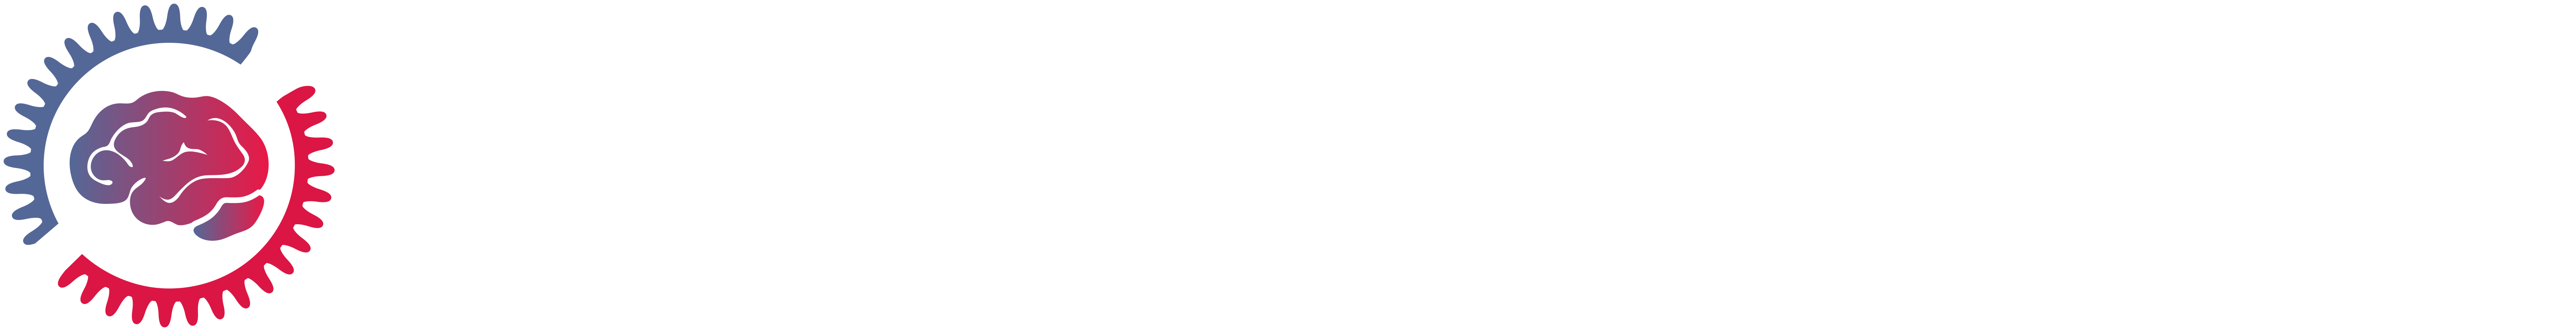 Neuroergonomics Conference 2021